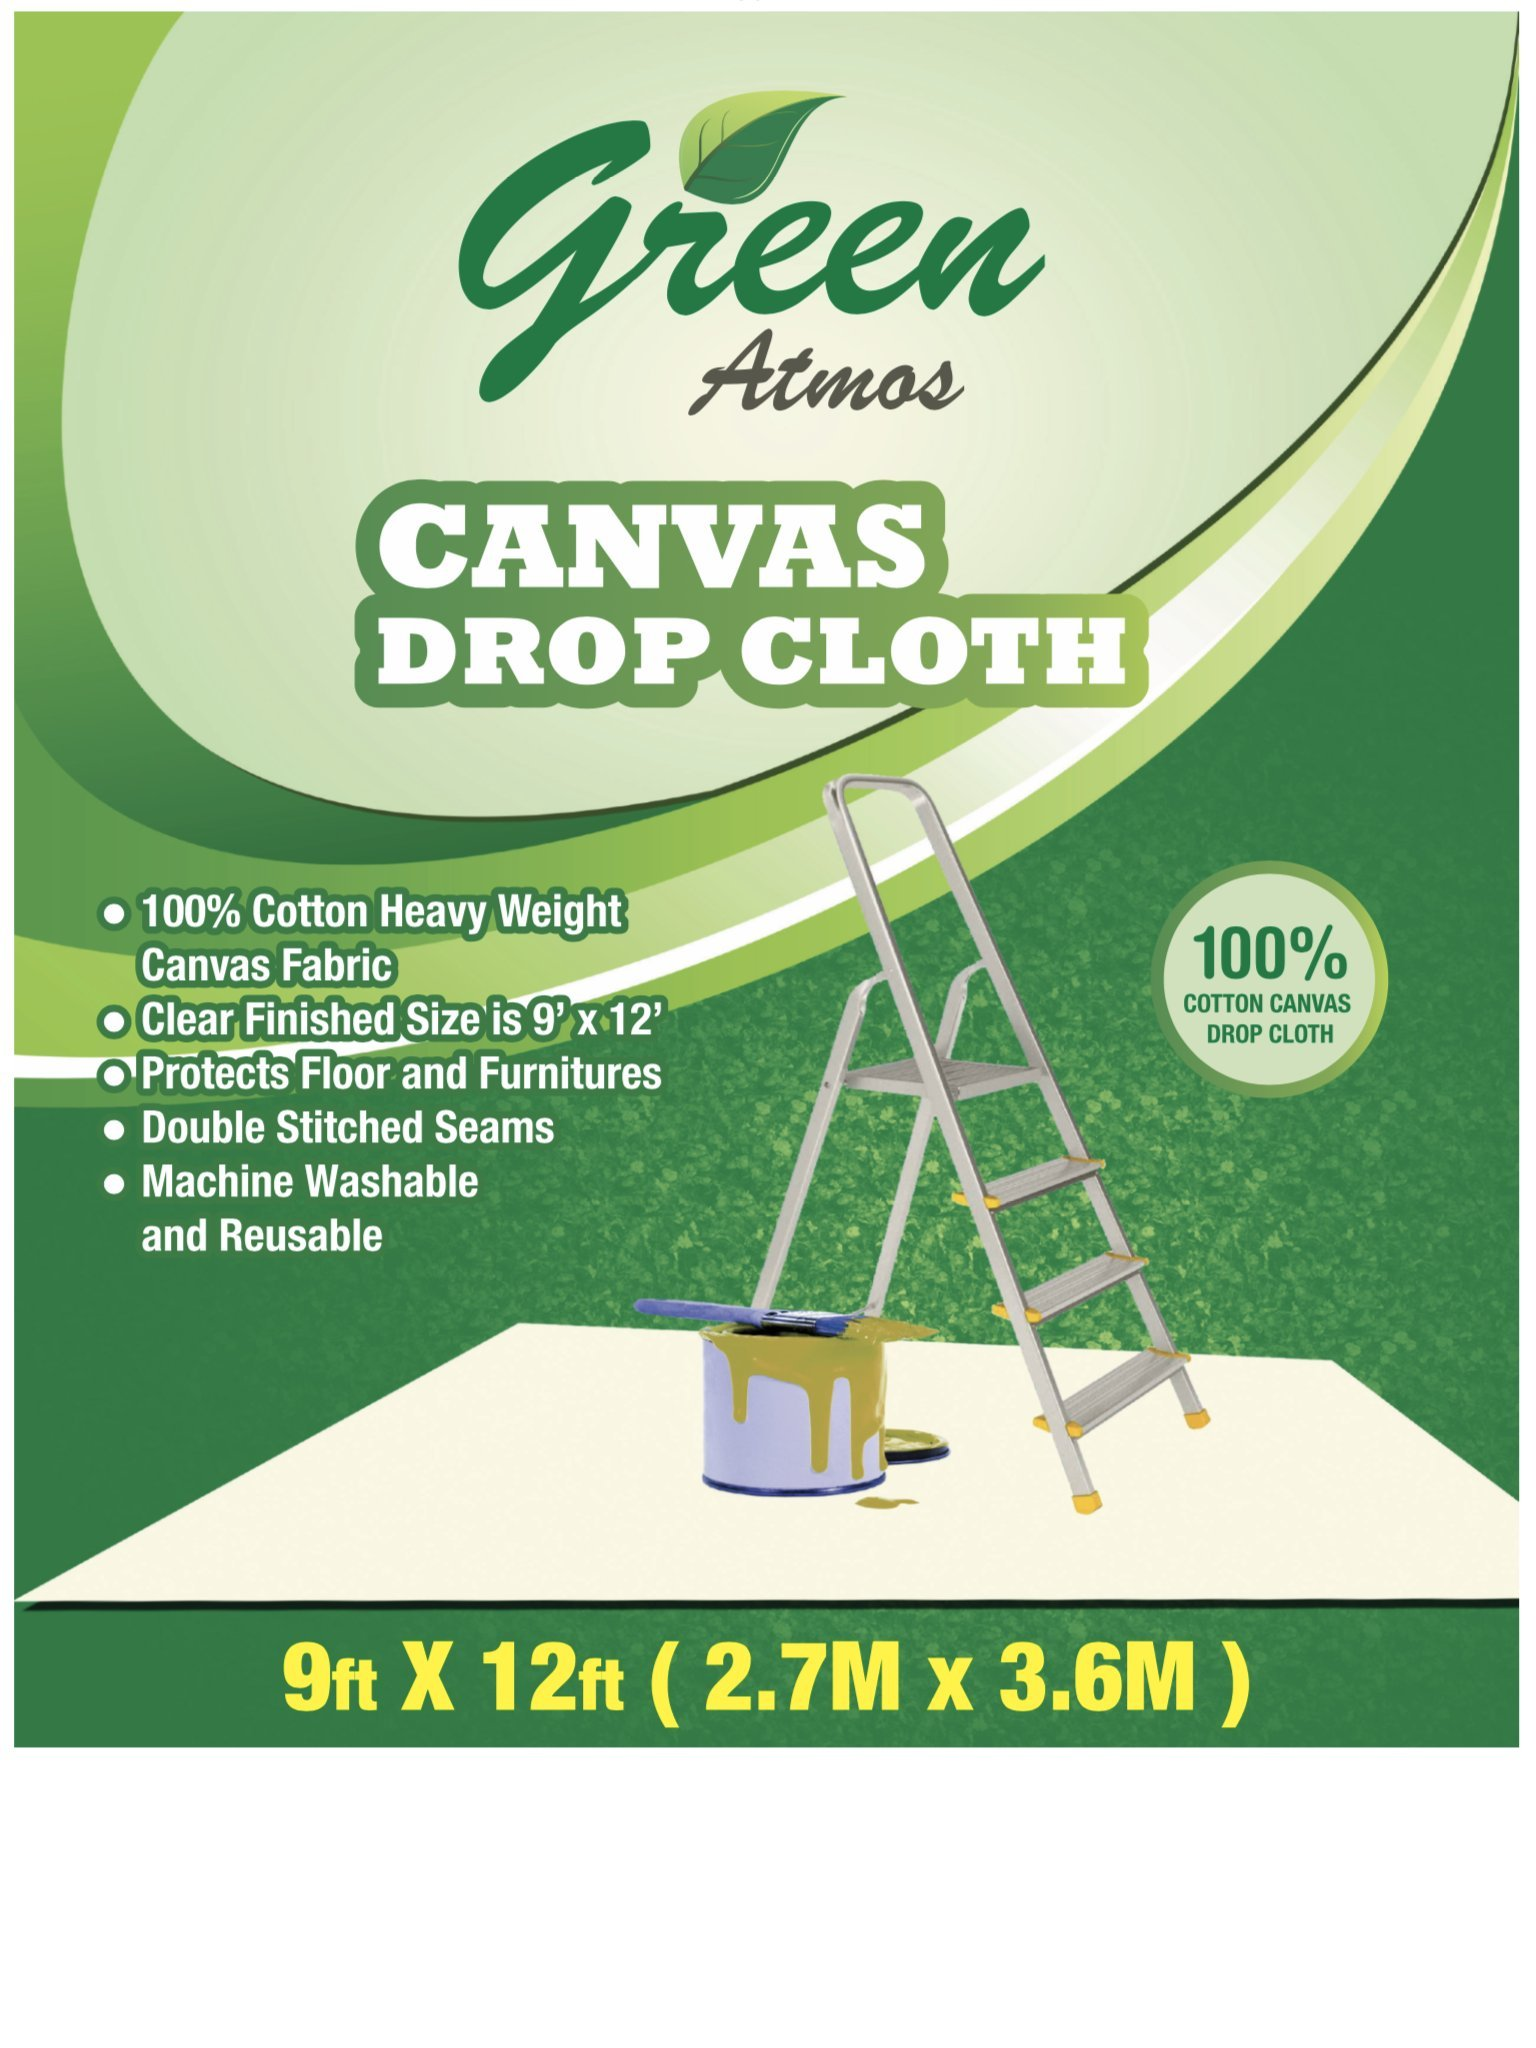 GREEN ATMOS 1 PACK- 9 X 12, 100% COTTON CANVAS DROP CLOTH - ECO FRIENDLY ALL PURPOSE PAINTING/ INTERIOR/ REFURBISHING/ CONTRACTOR'S CHOICE/ PAINT SHIELD/ FLOOR/ FURNITURE PROTECTOR.